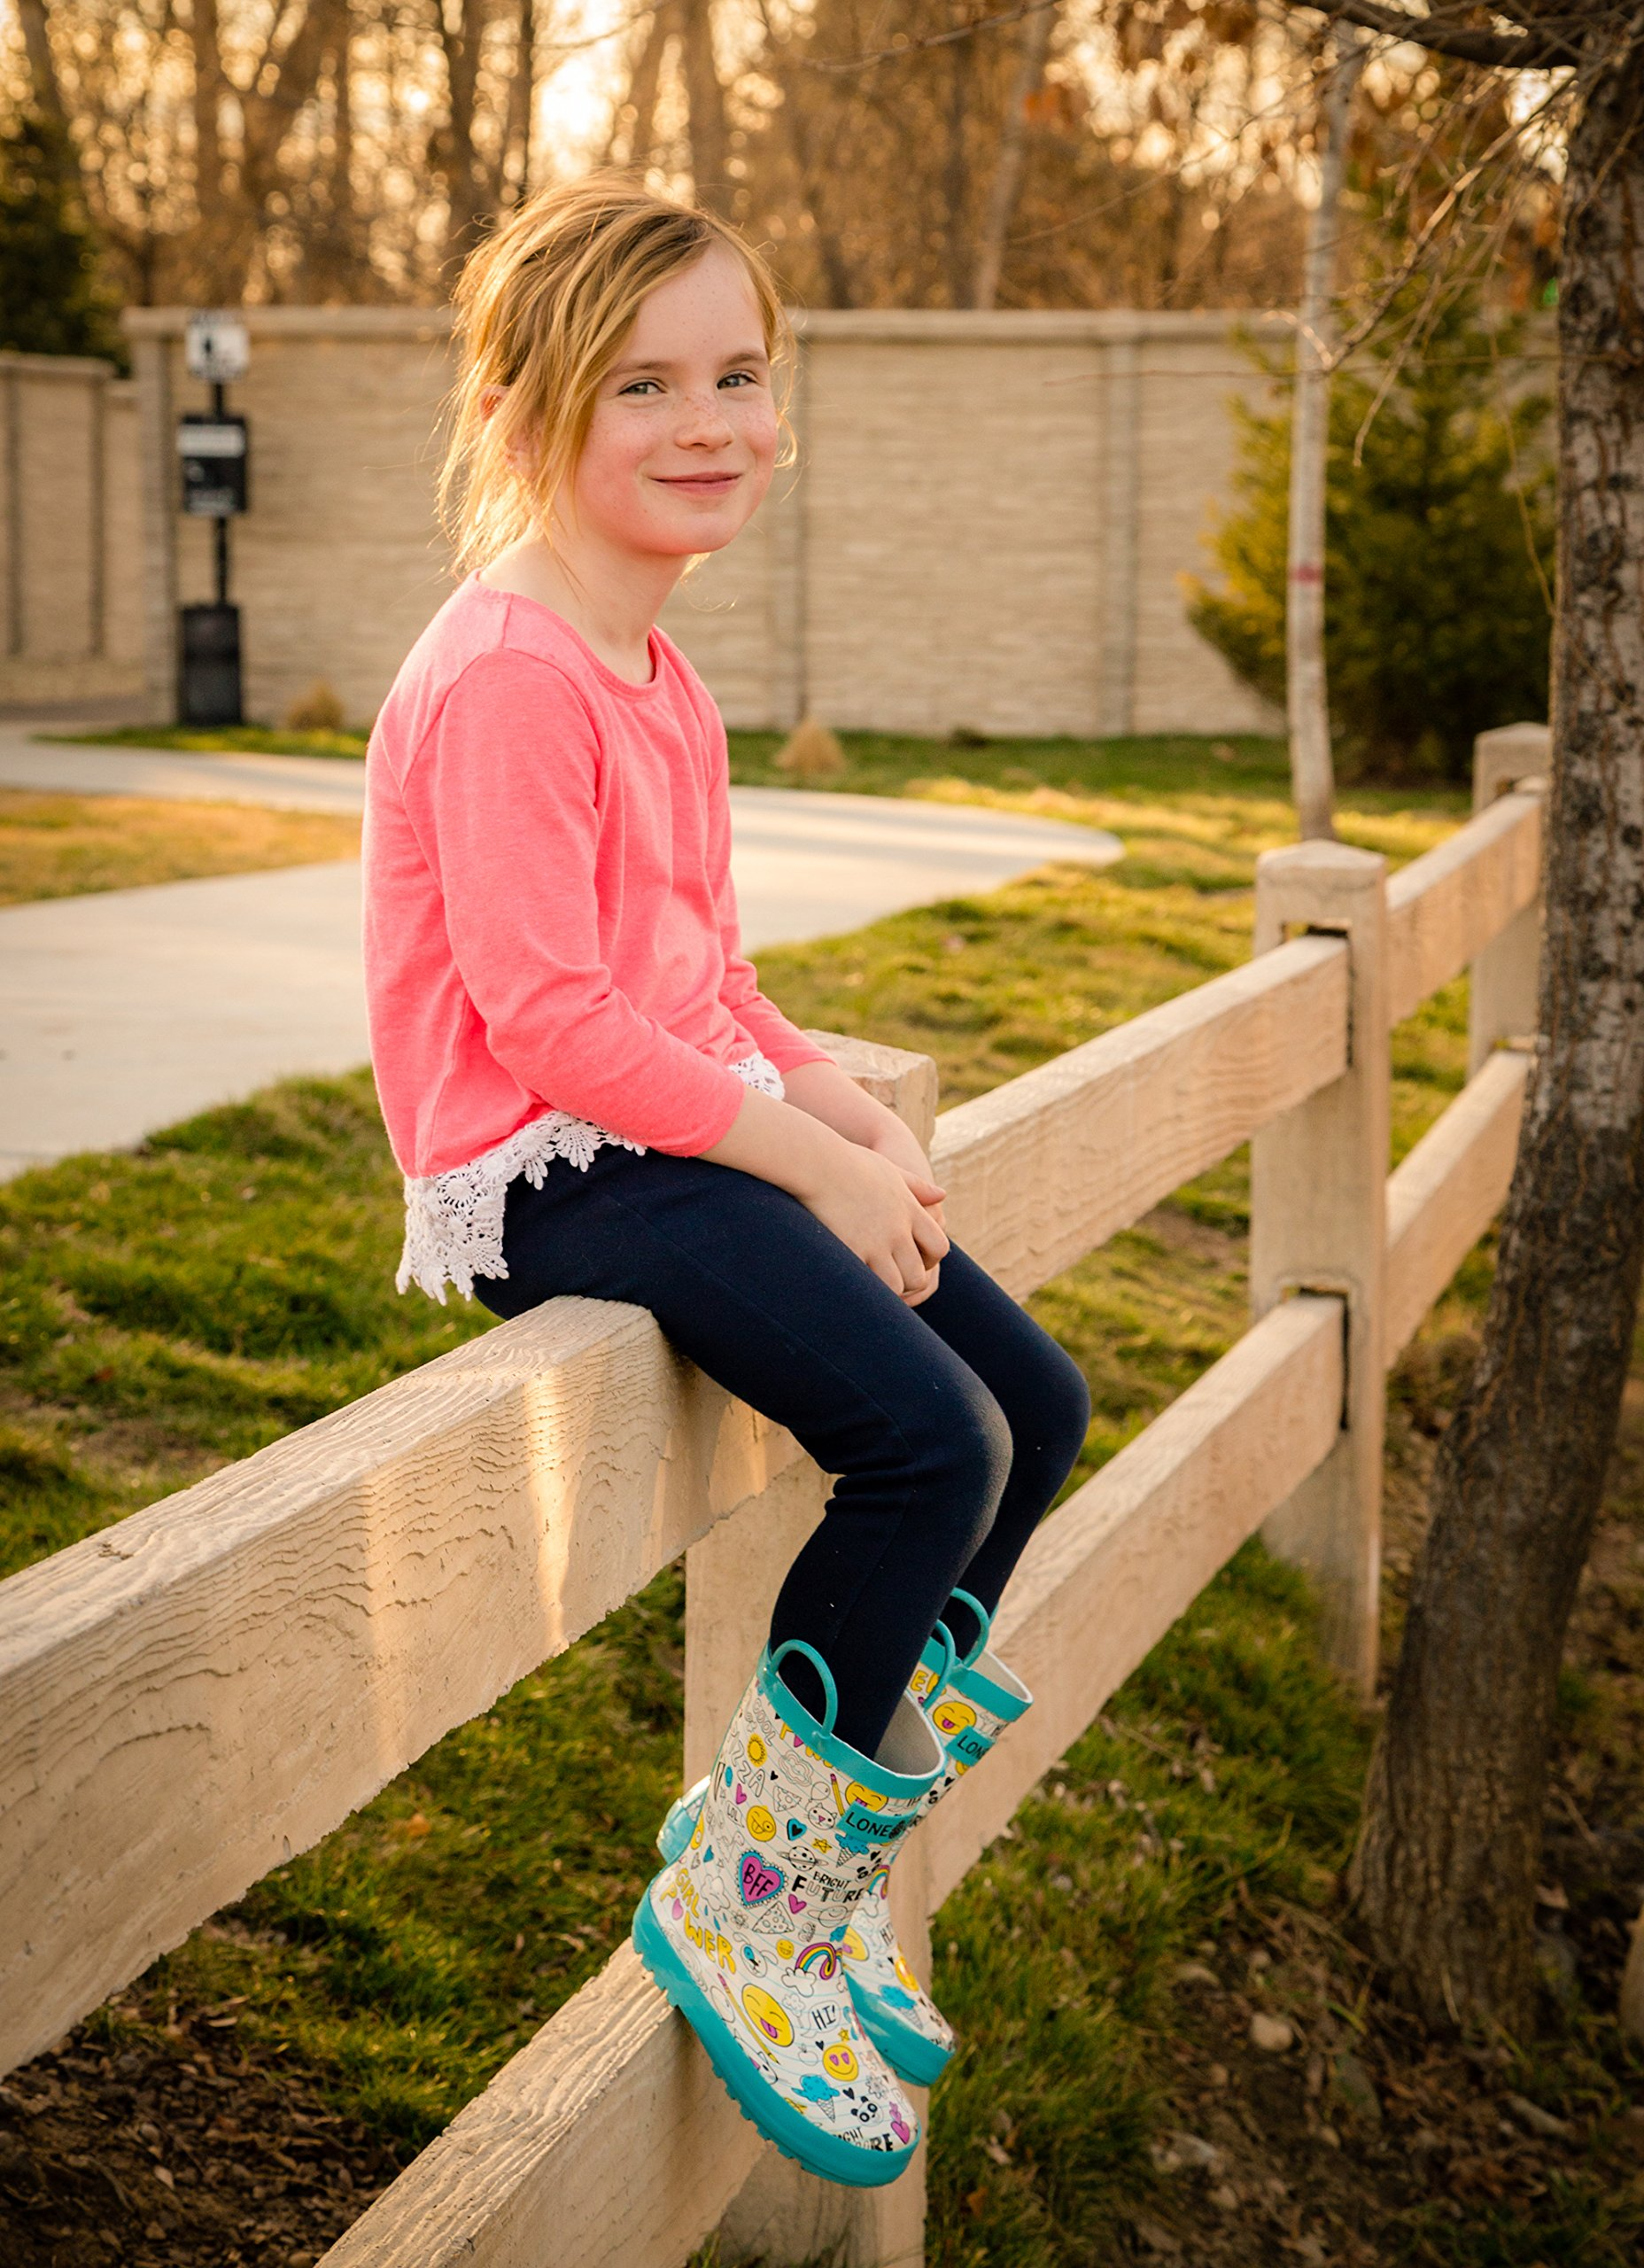 LONECONE Children's Waterproof Rubber Rain Boots in Fun Patterns with Easy-On Handles Simple for Kids, Oodles of Doodles, Toddler 8 by LONECONE (Image #7)